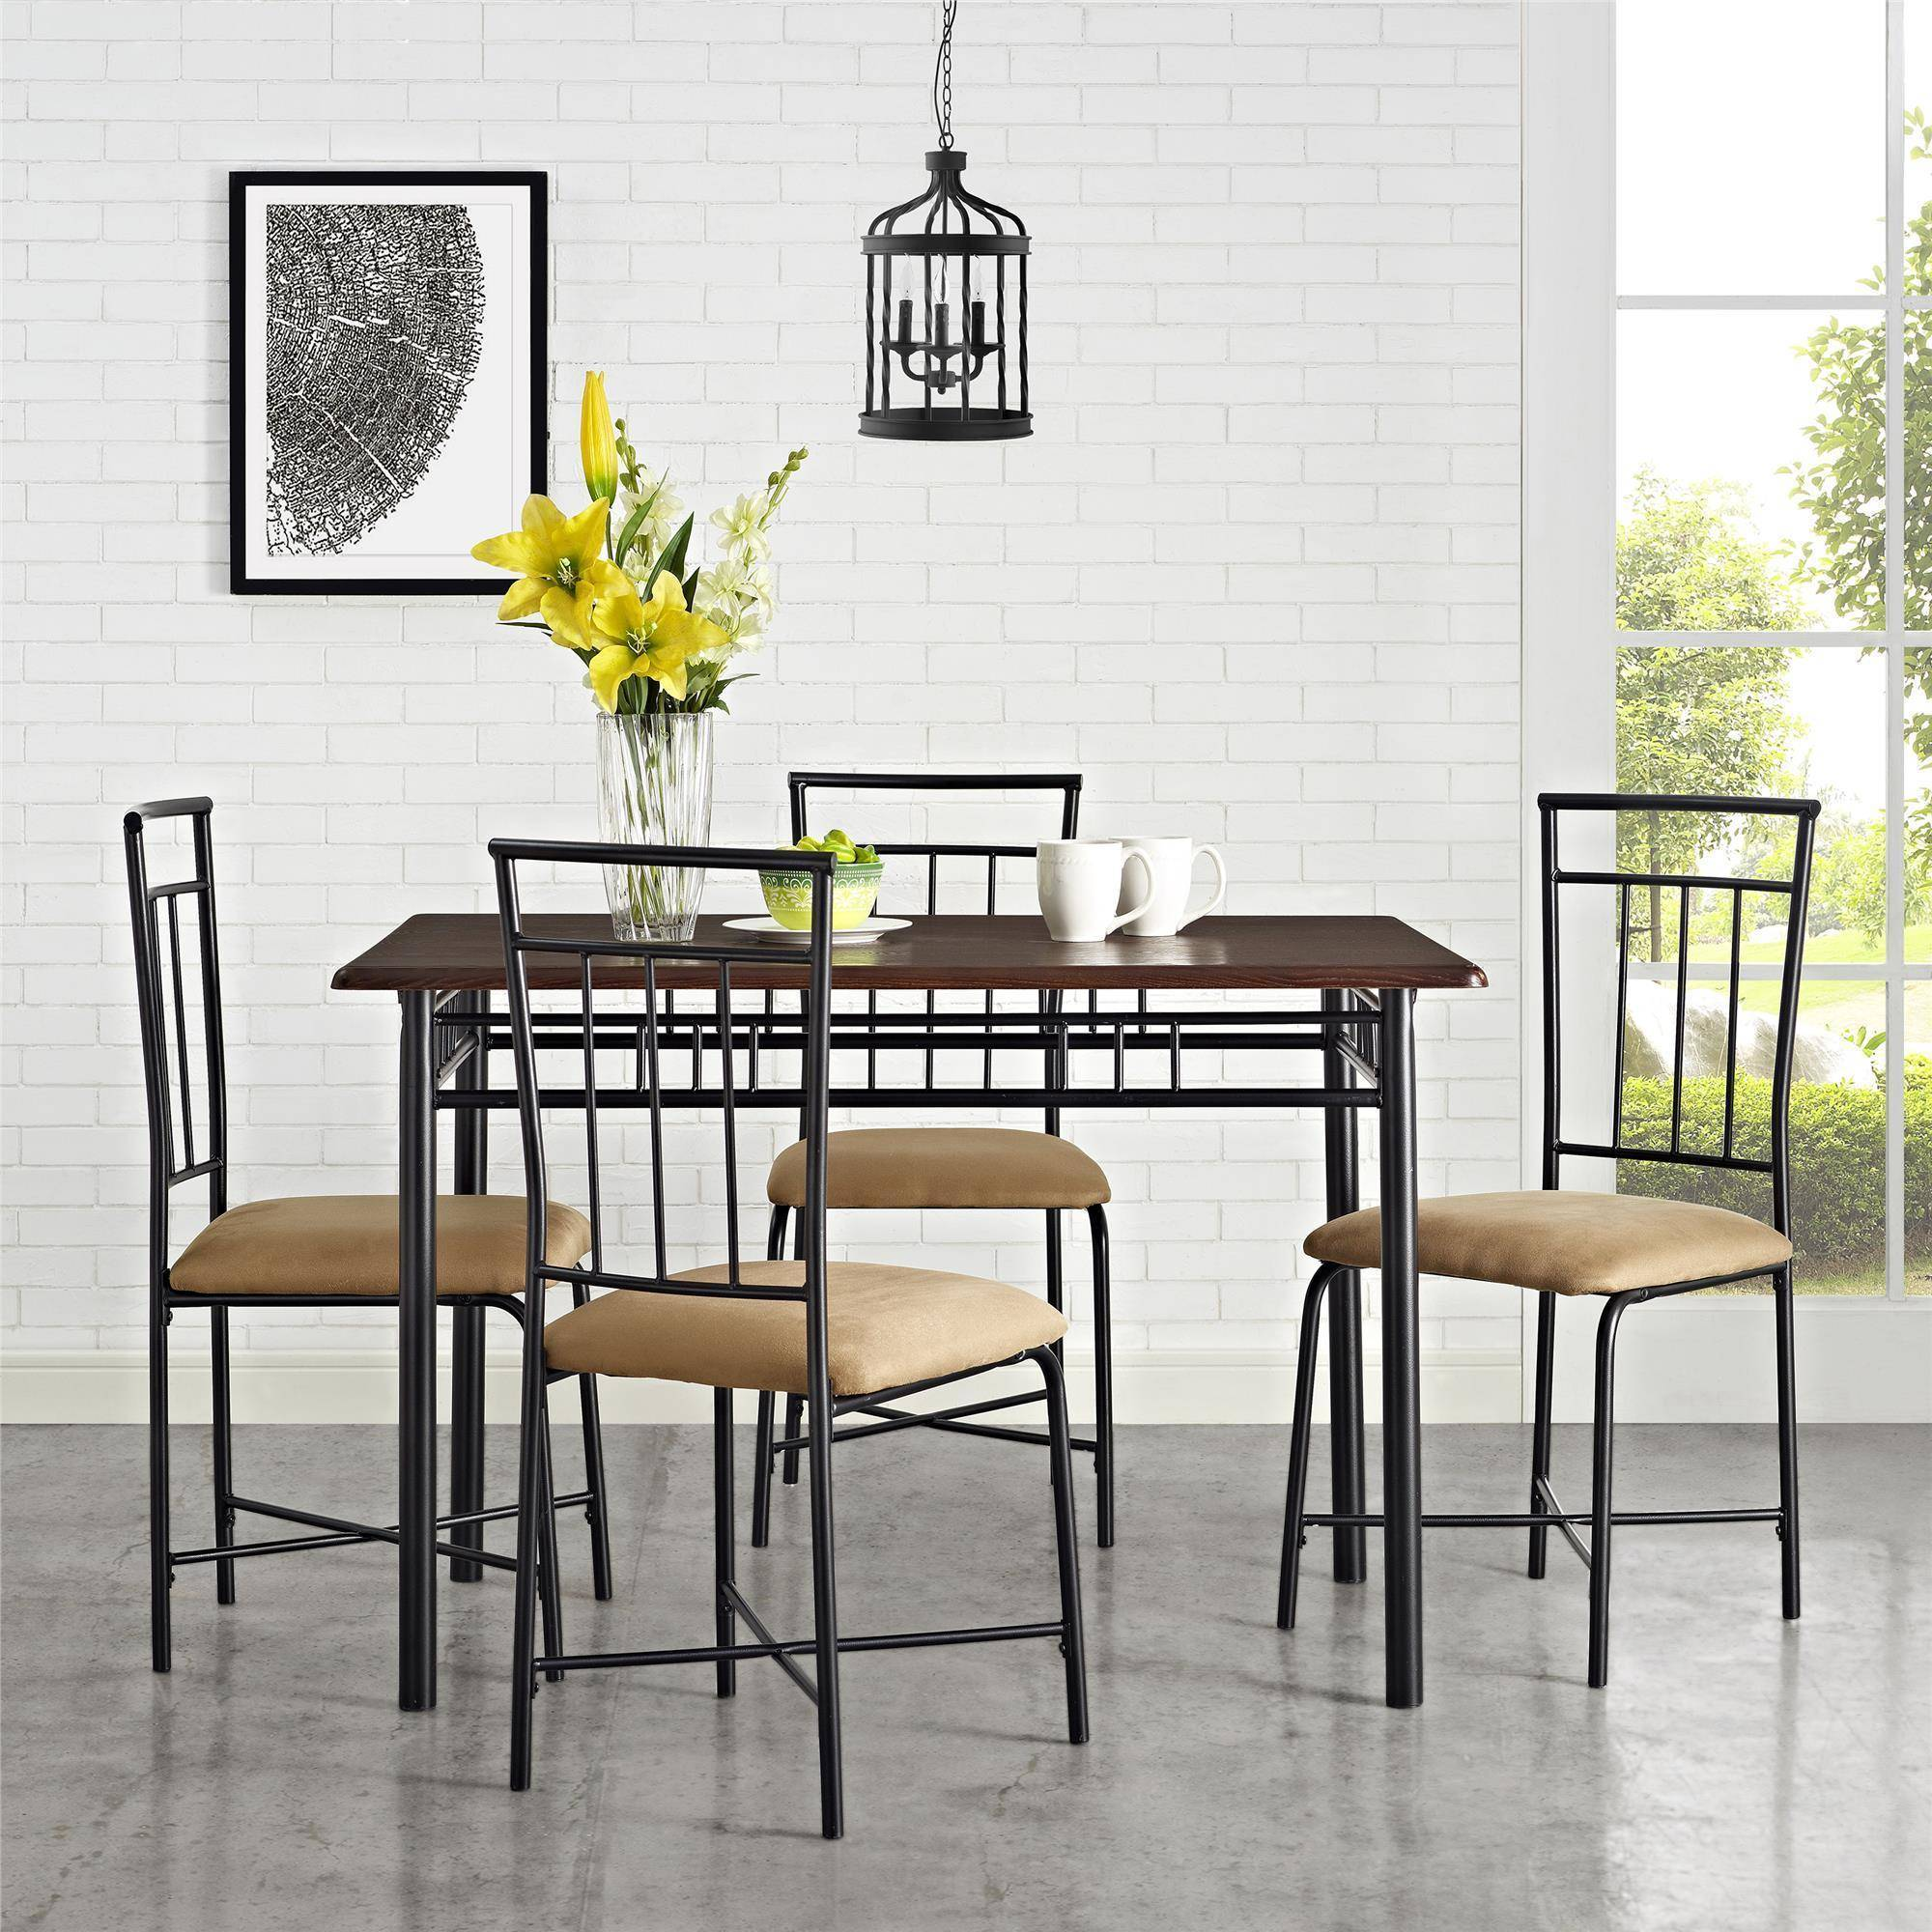 Dining Area Mainstays 5 Piece Dining Set Multiple Colors